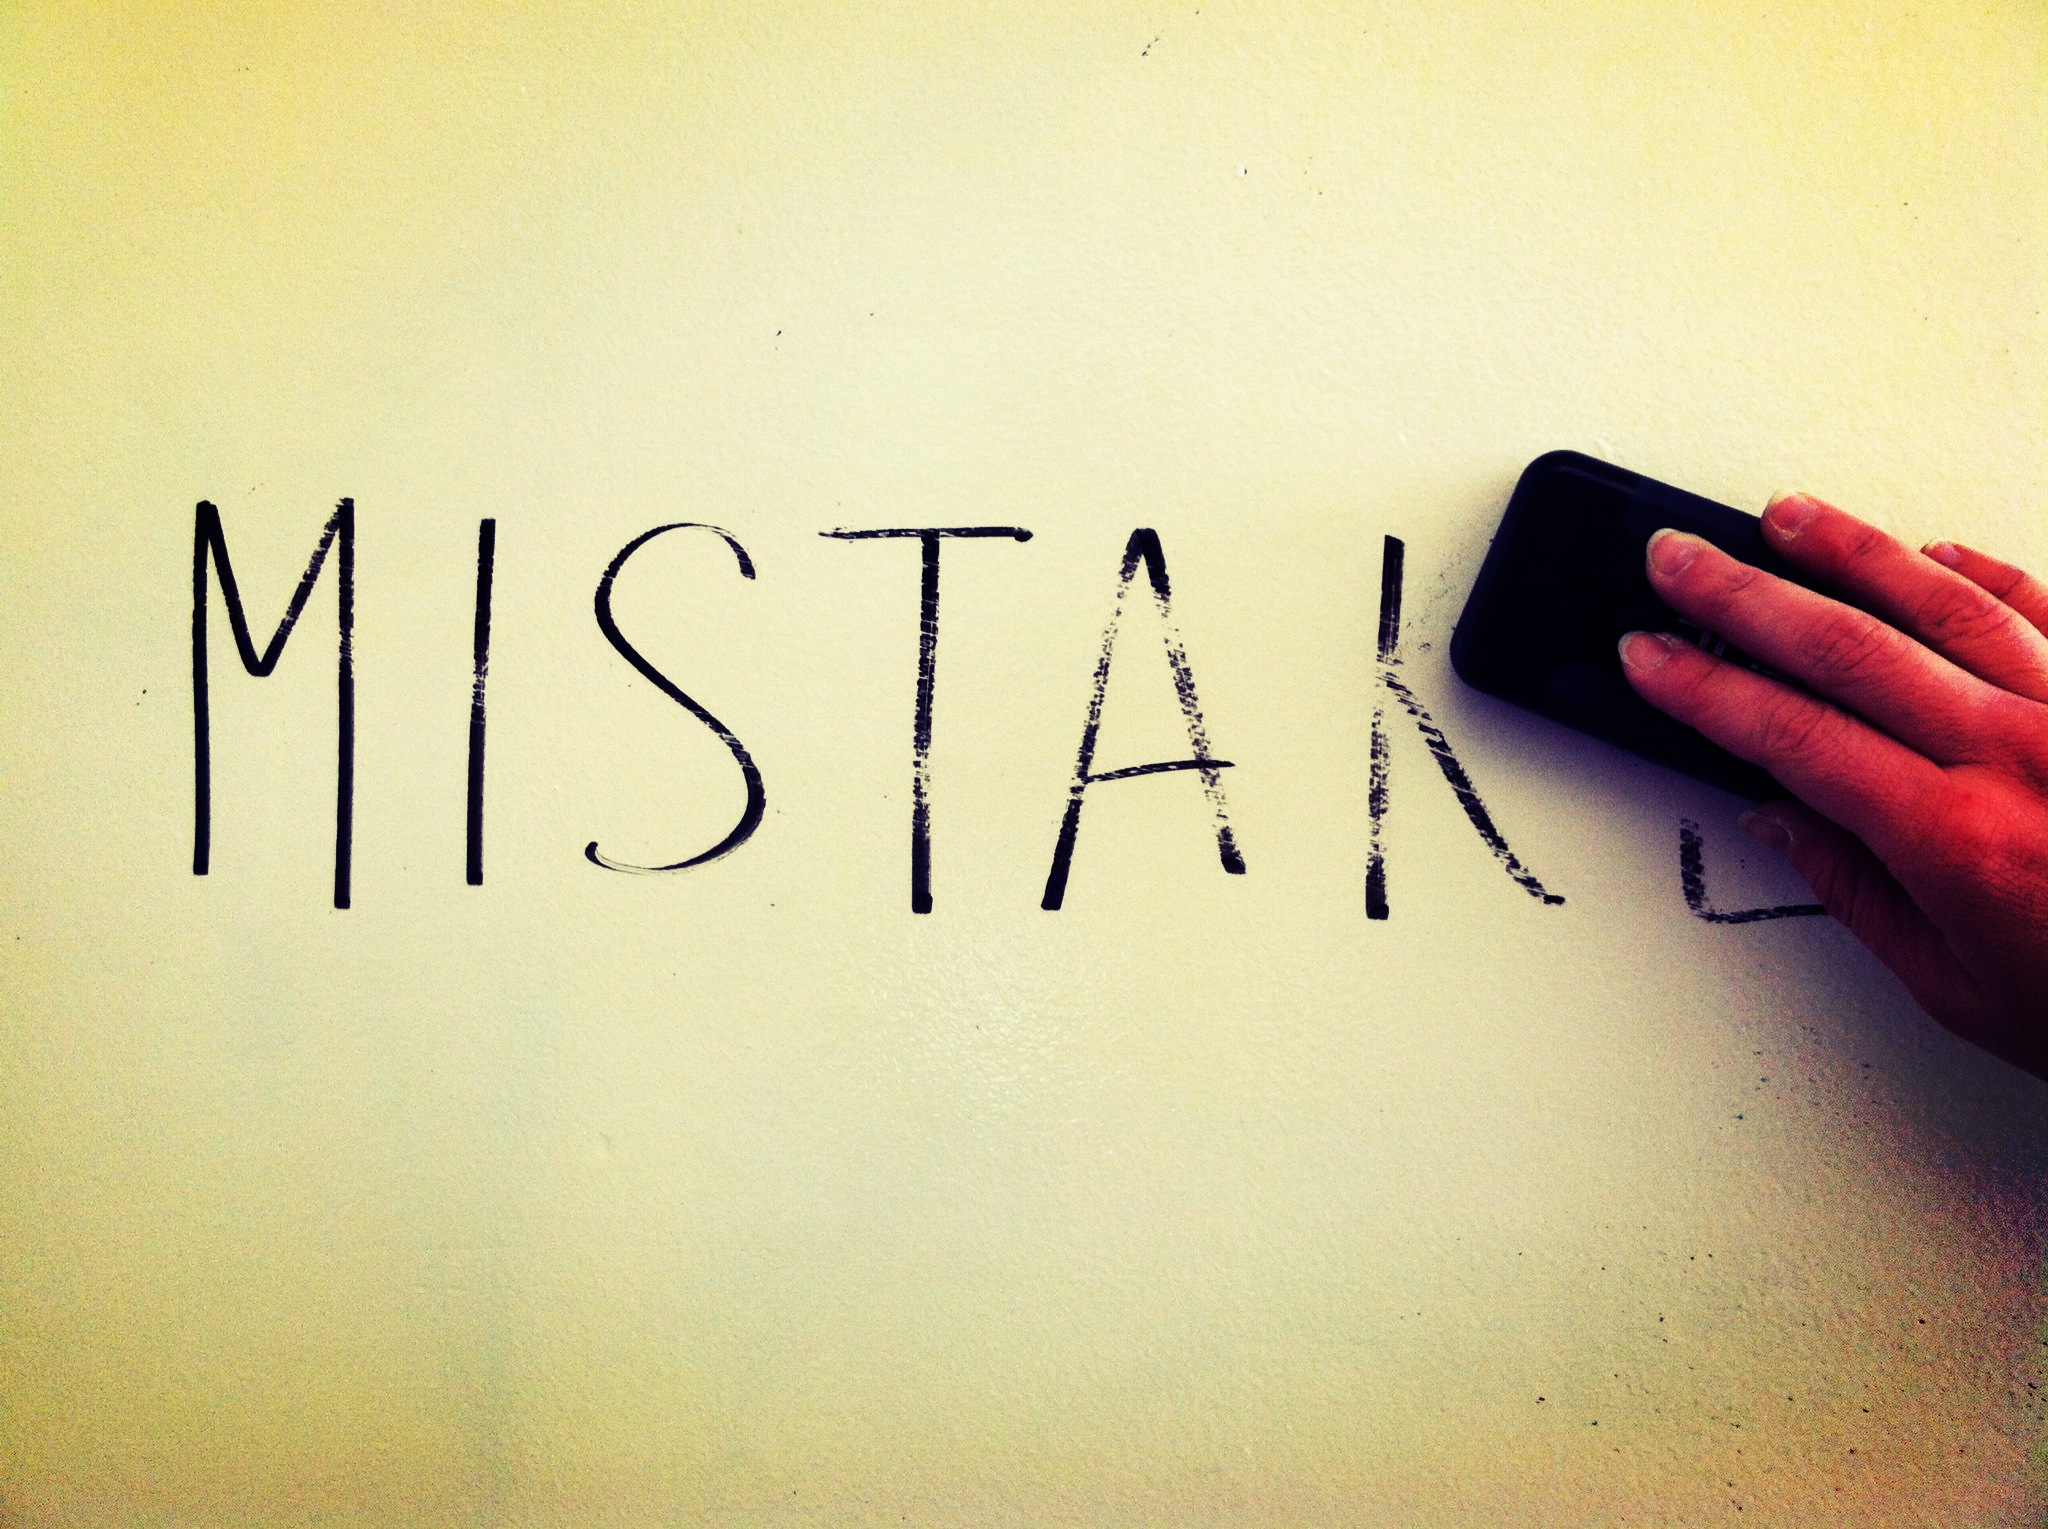 Be Yourself and Start Making Mistakes